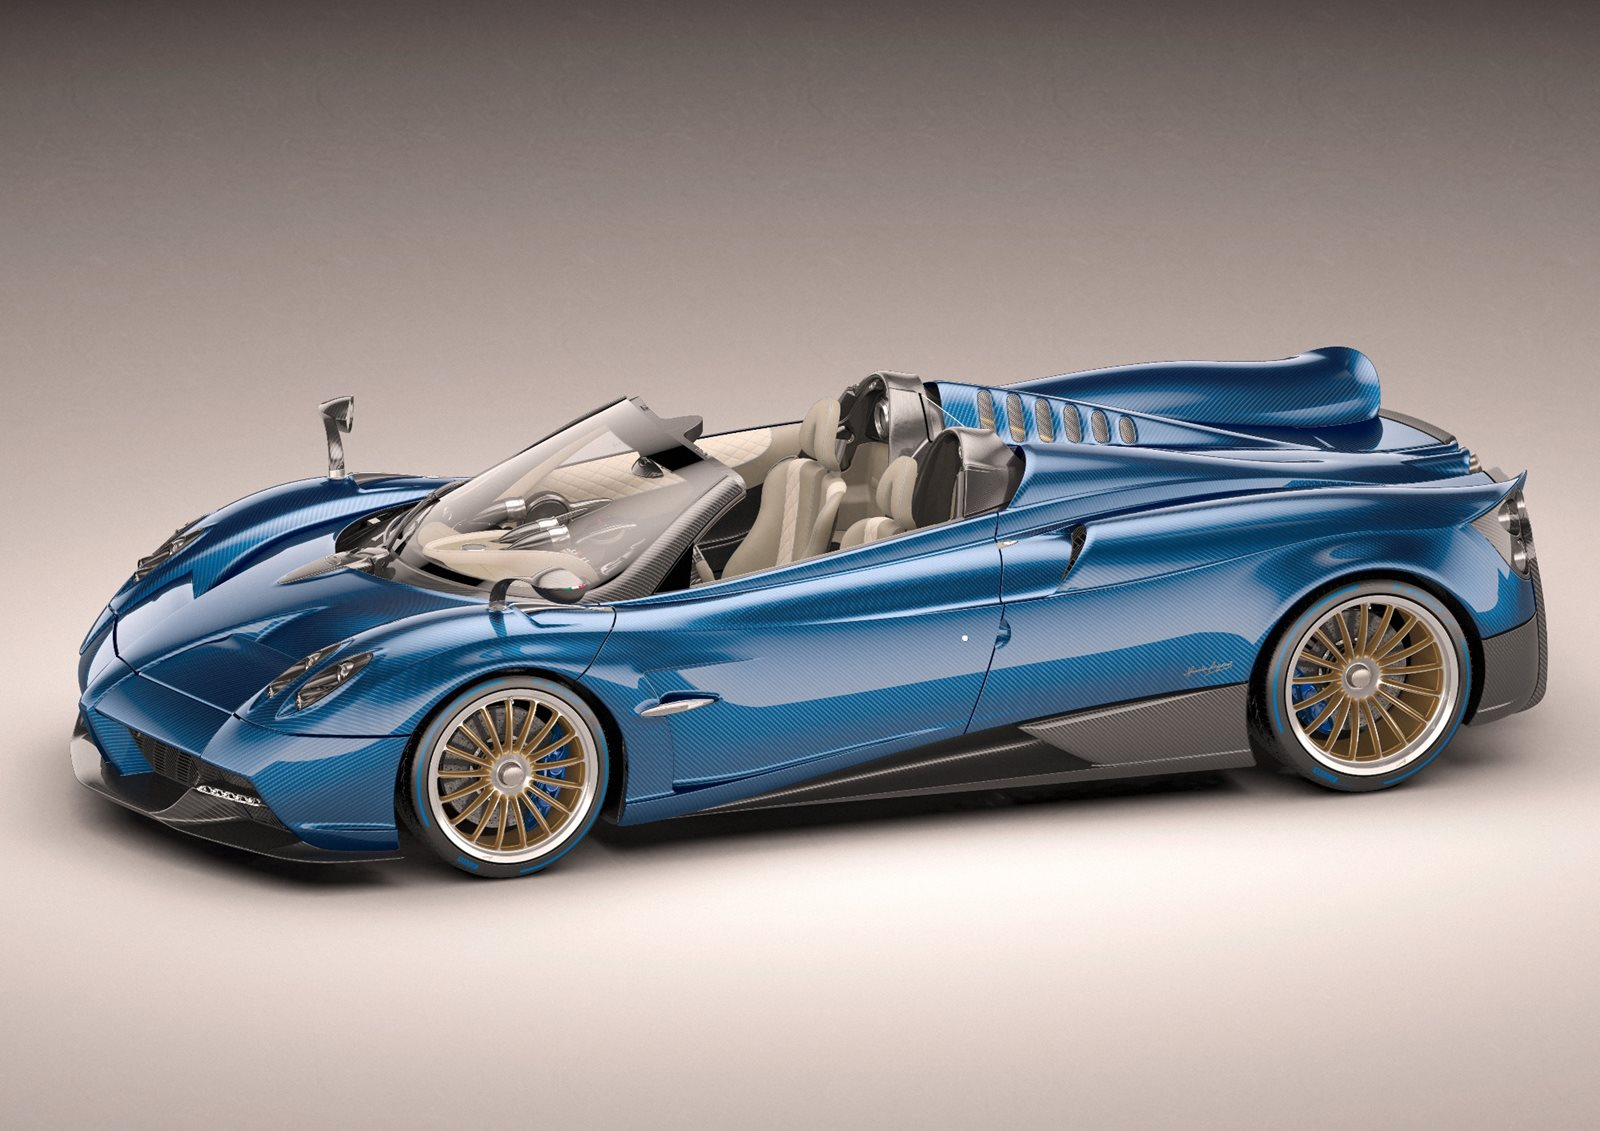 2018 pagani huayra roadster review,trims, specs and price - carbuzz